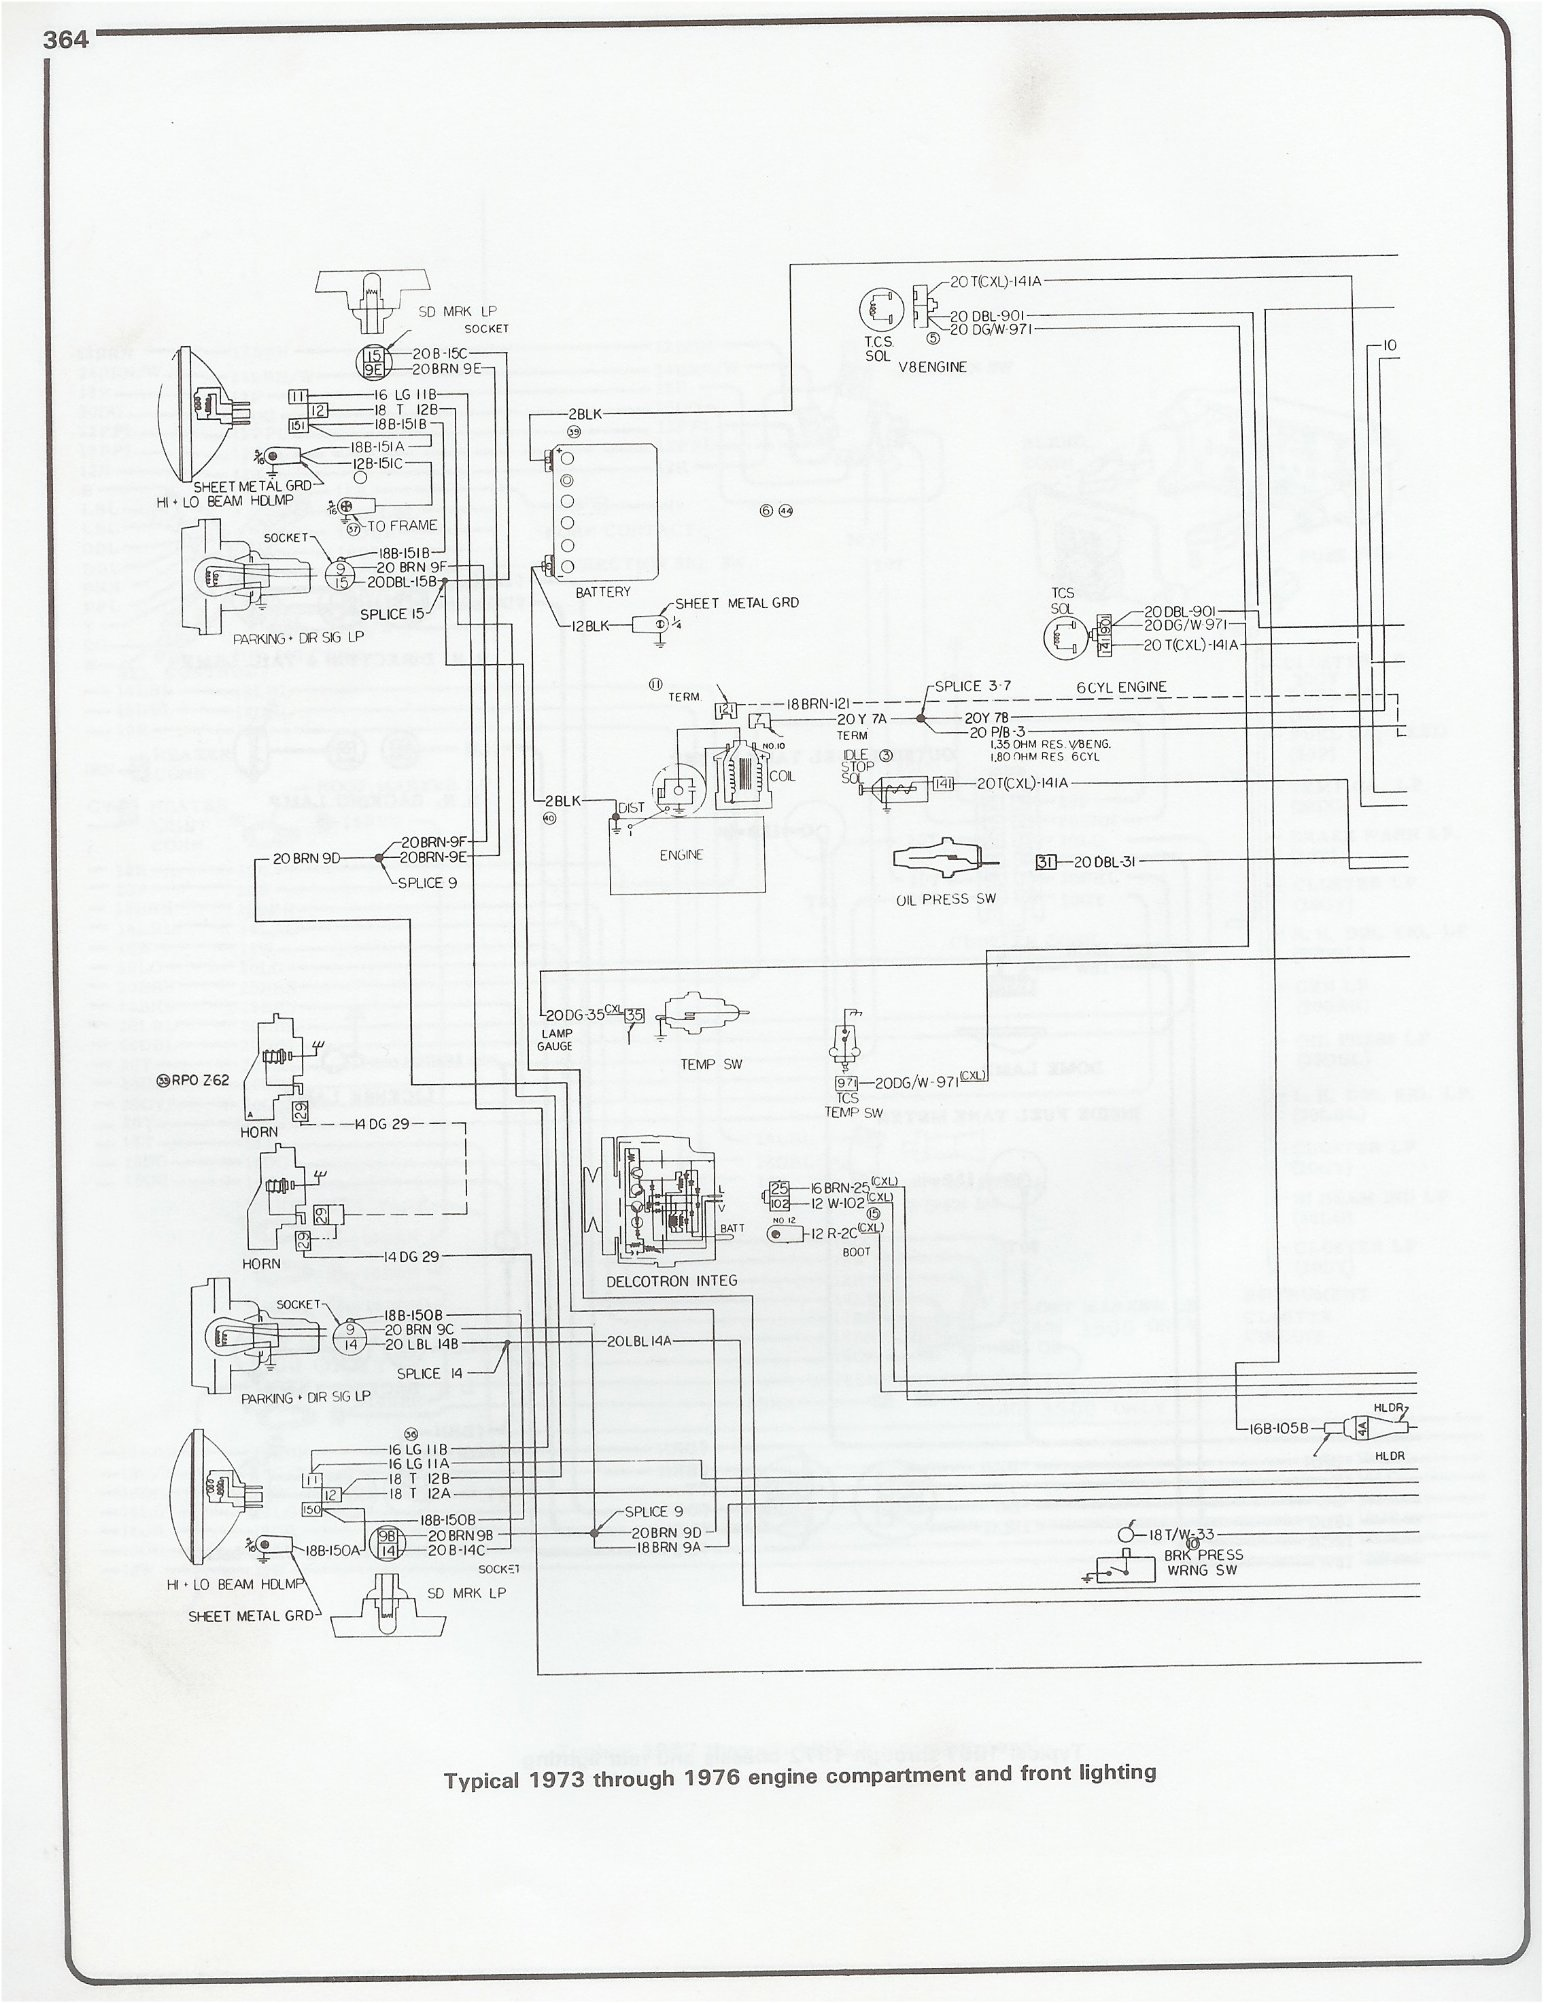 Complete 73 87 Wiring Diagrams Isuzu Stock Radio Schematic 76 Engine And Front Lighting